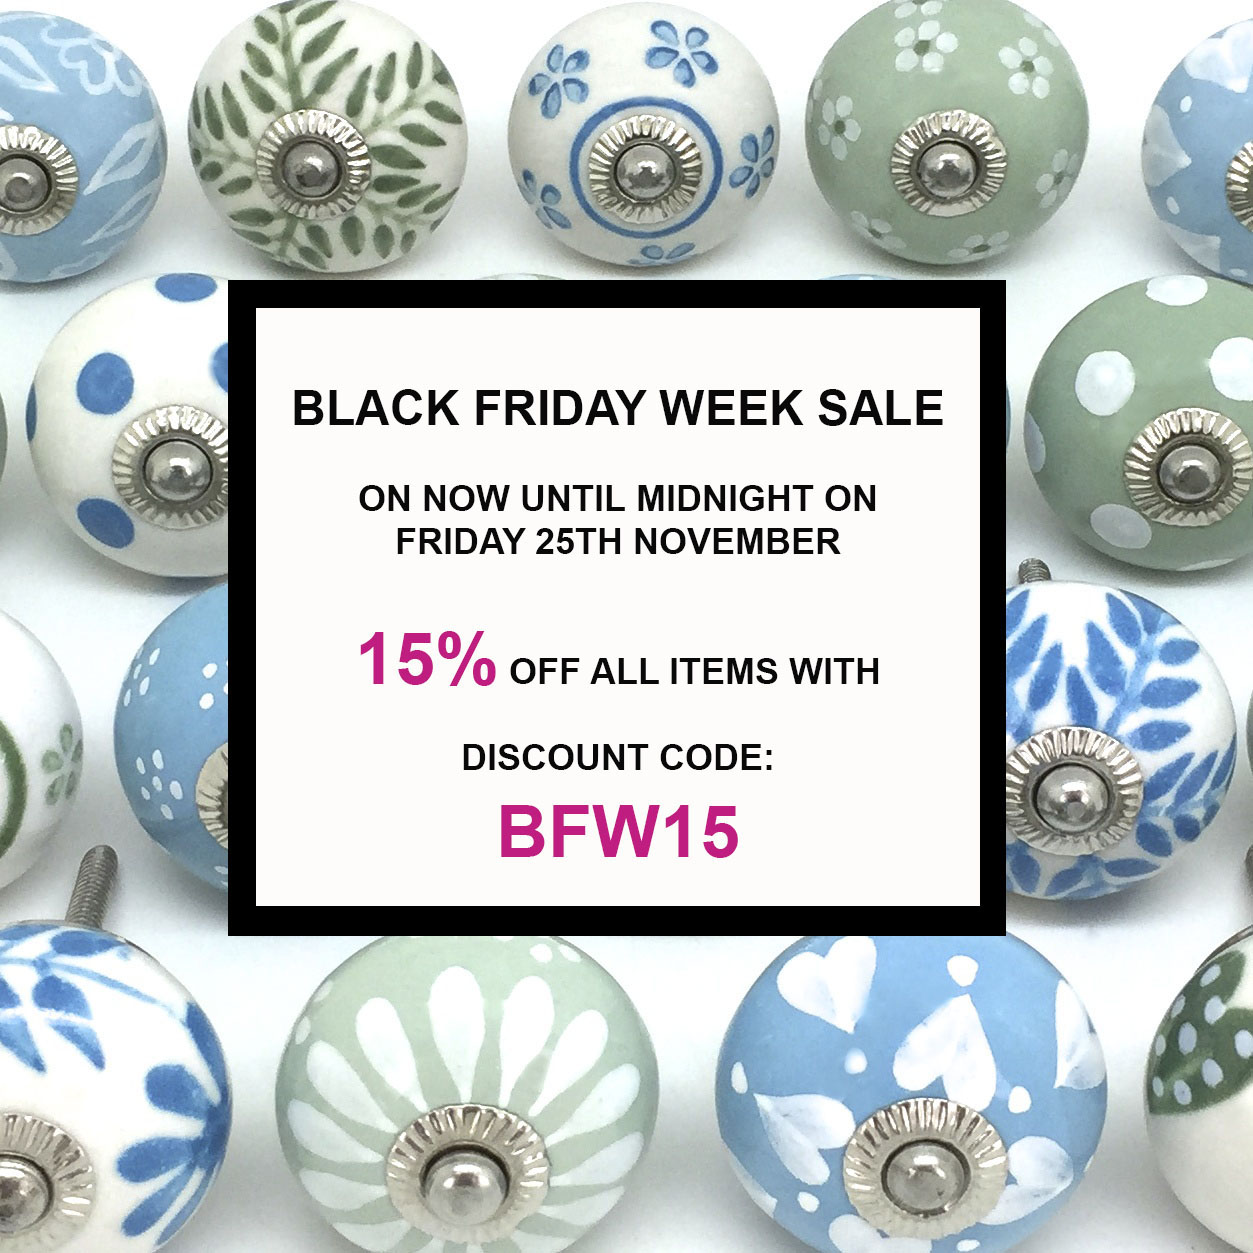 BLACK FRIDAY WEEK SALE - ON NOW!